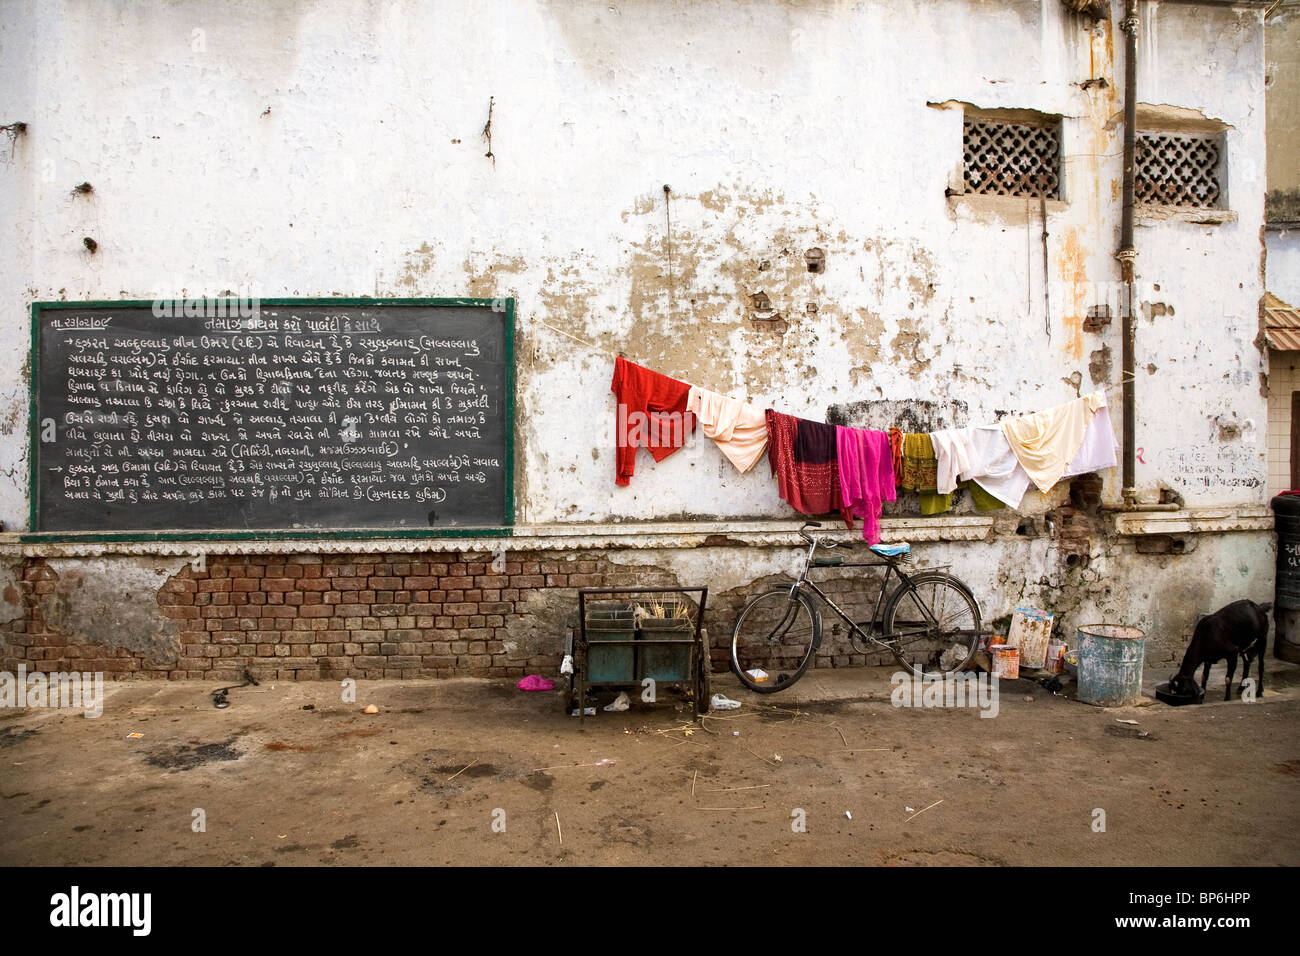 A scene from a back street in Ahmedabad, Gujarat, India. Stock Photo